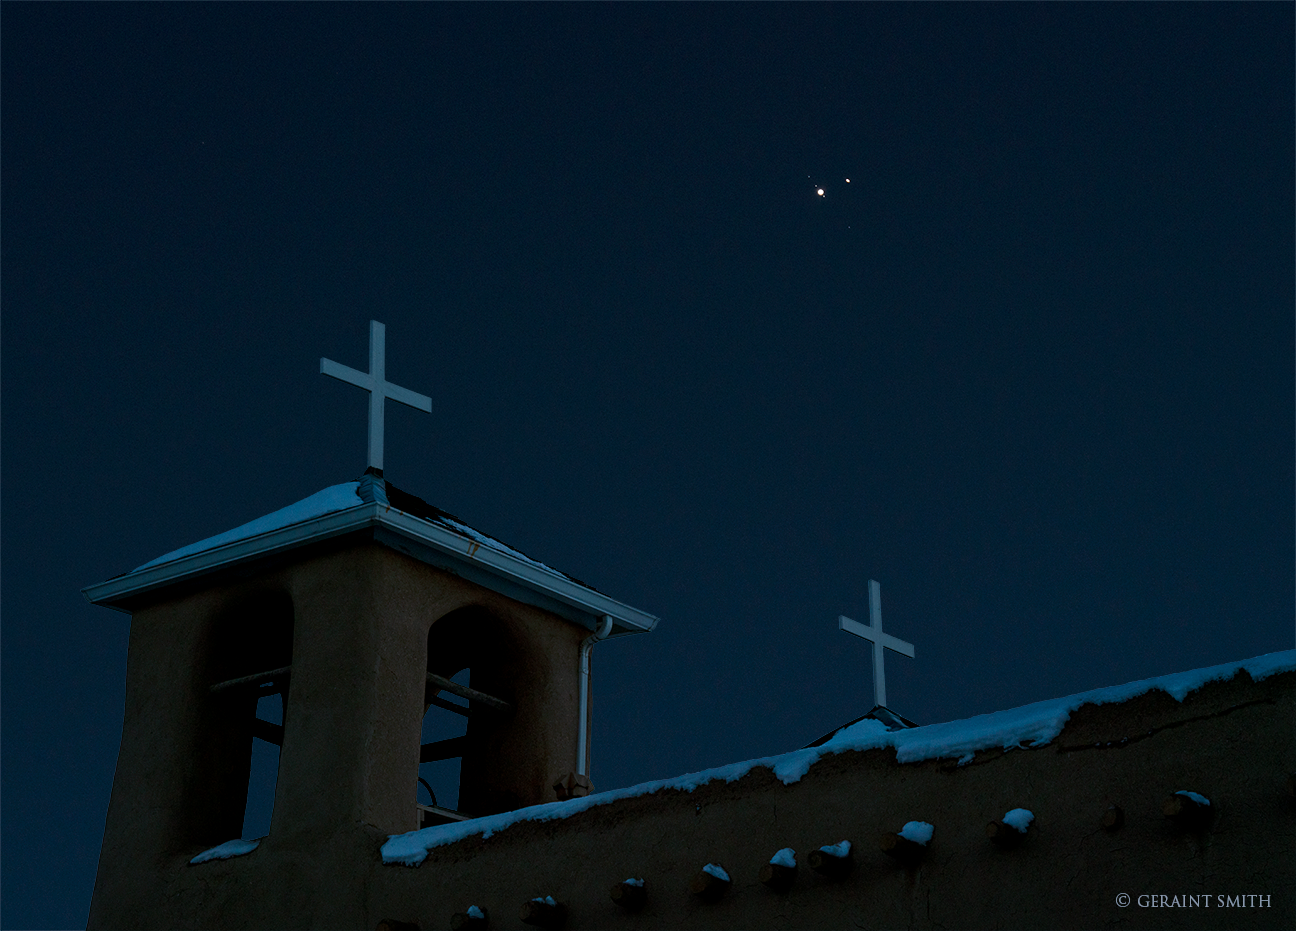 saint_francis_saturn_jupiter_conjunction_light_5158-2145189